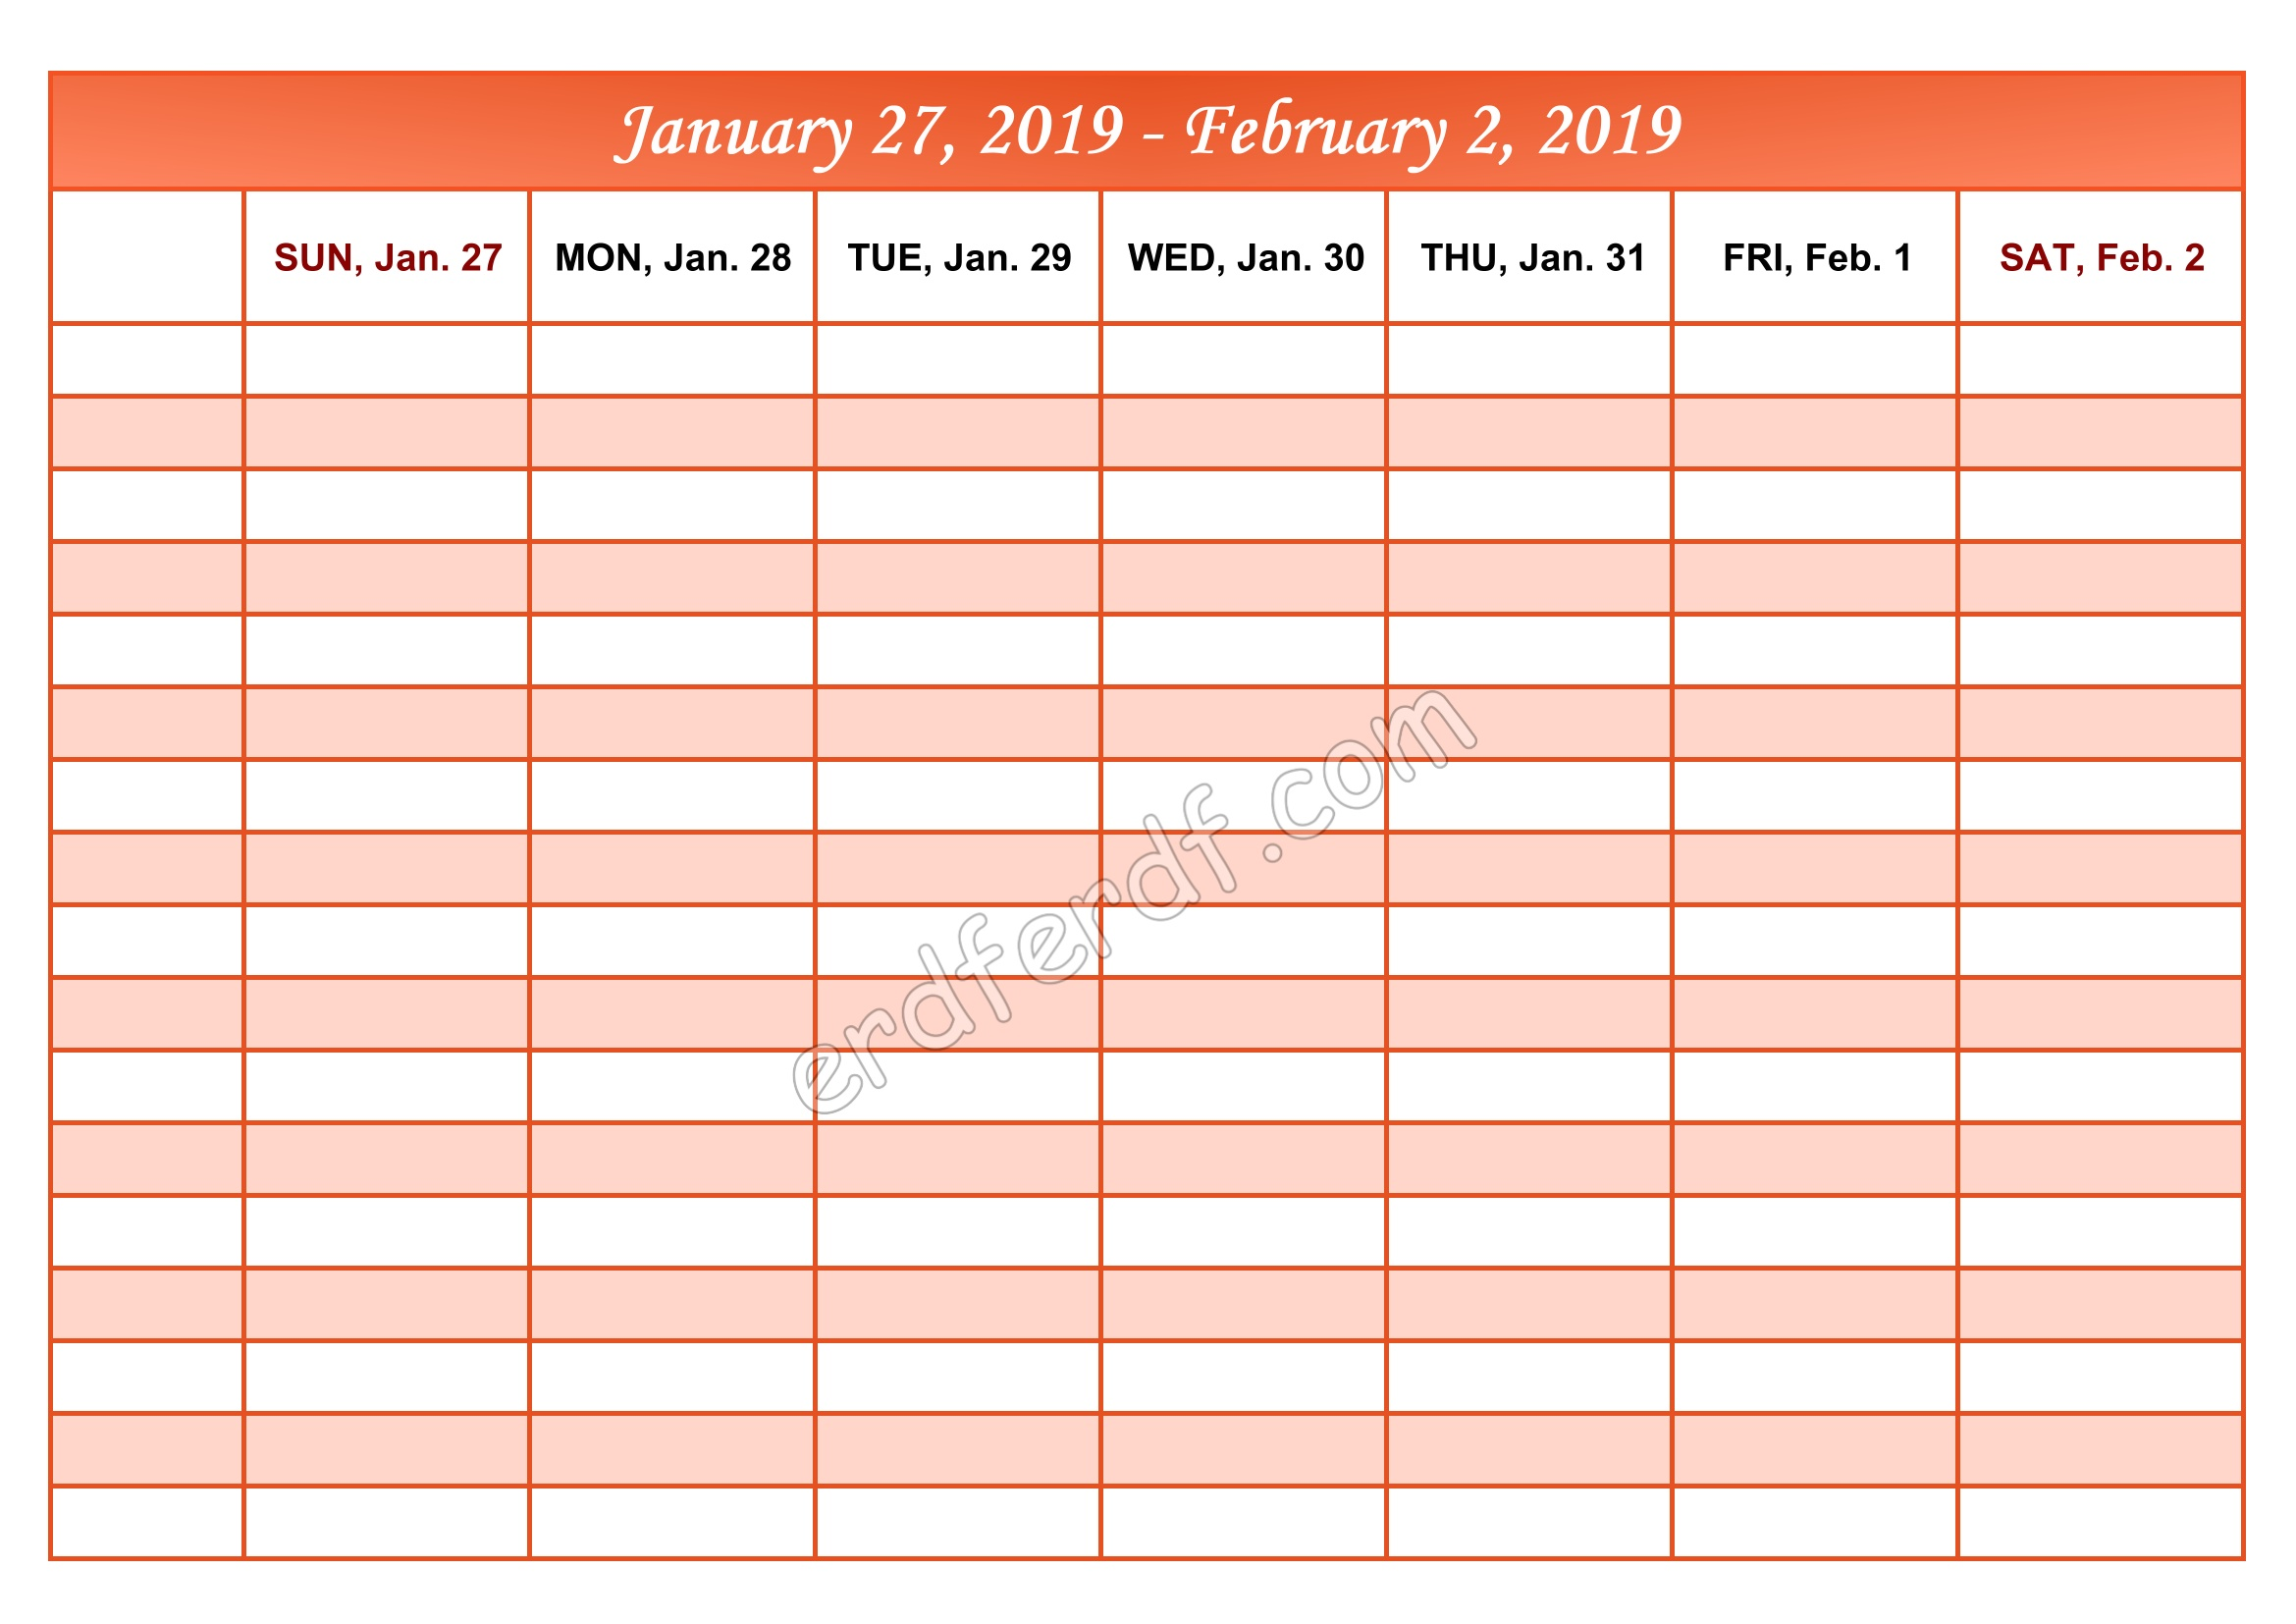 2 February Printable Calendar 2019 Weekly Month by Month